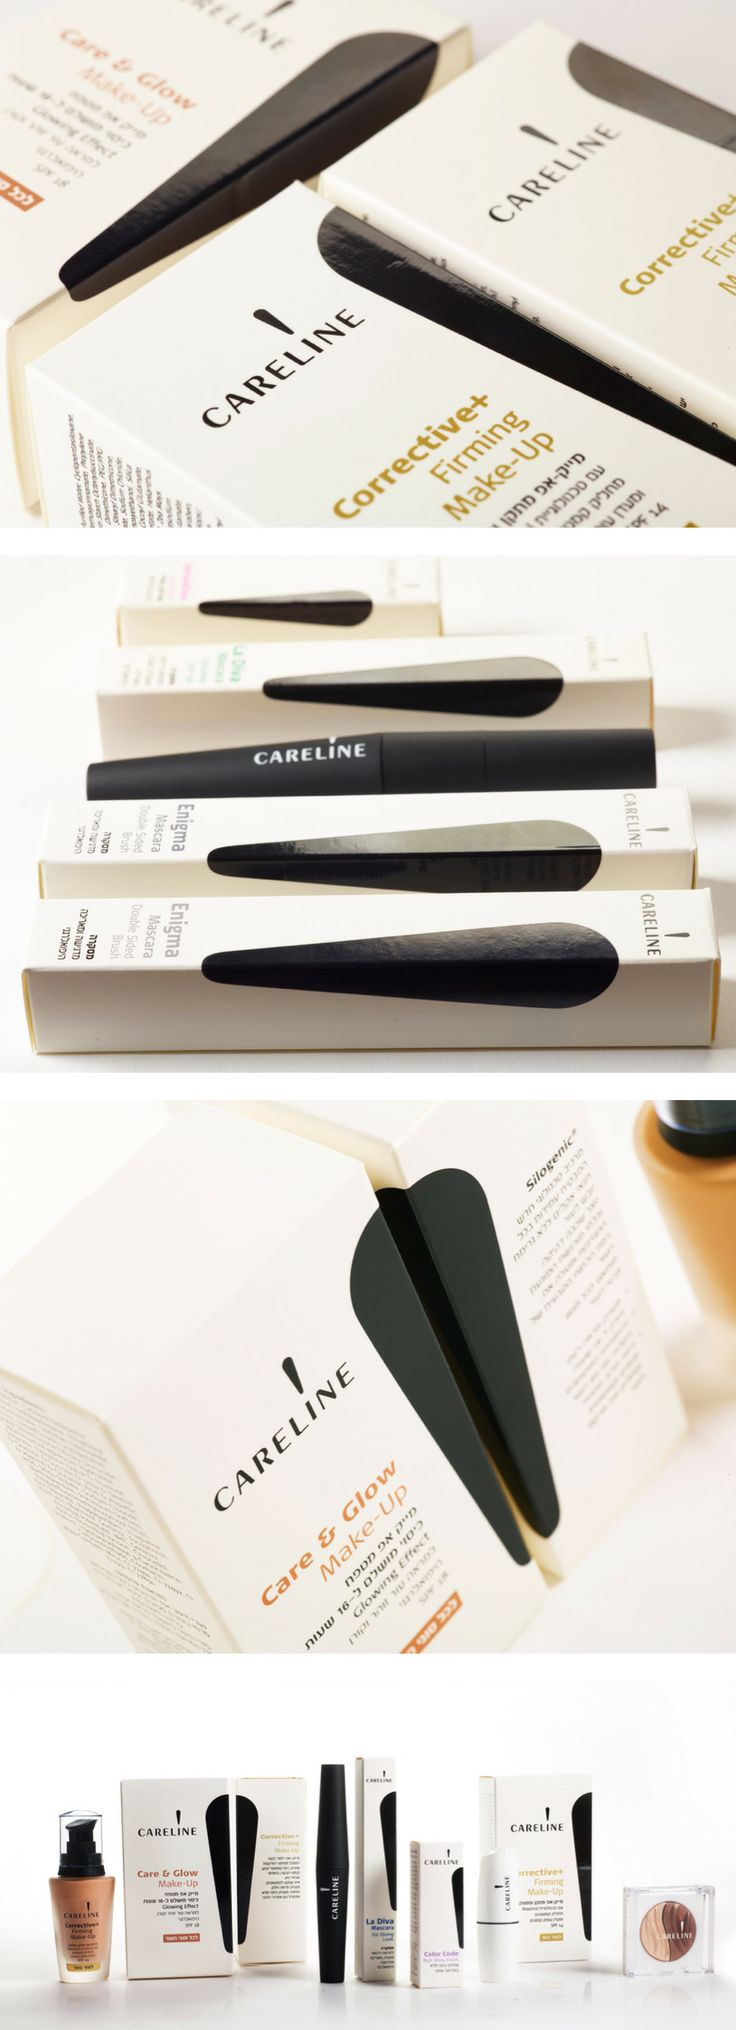 Careline Cosmetics #packaging